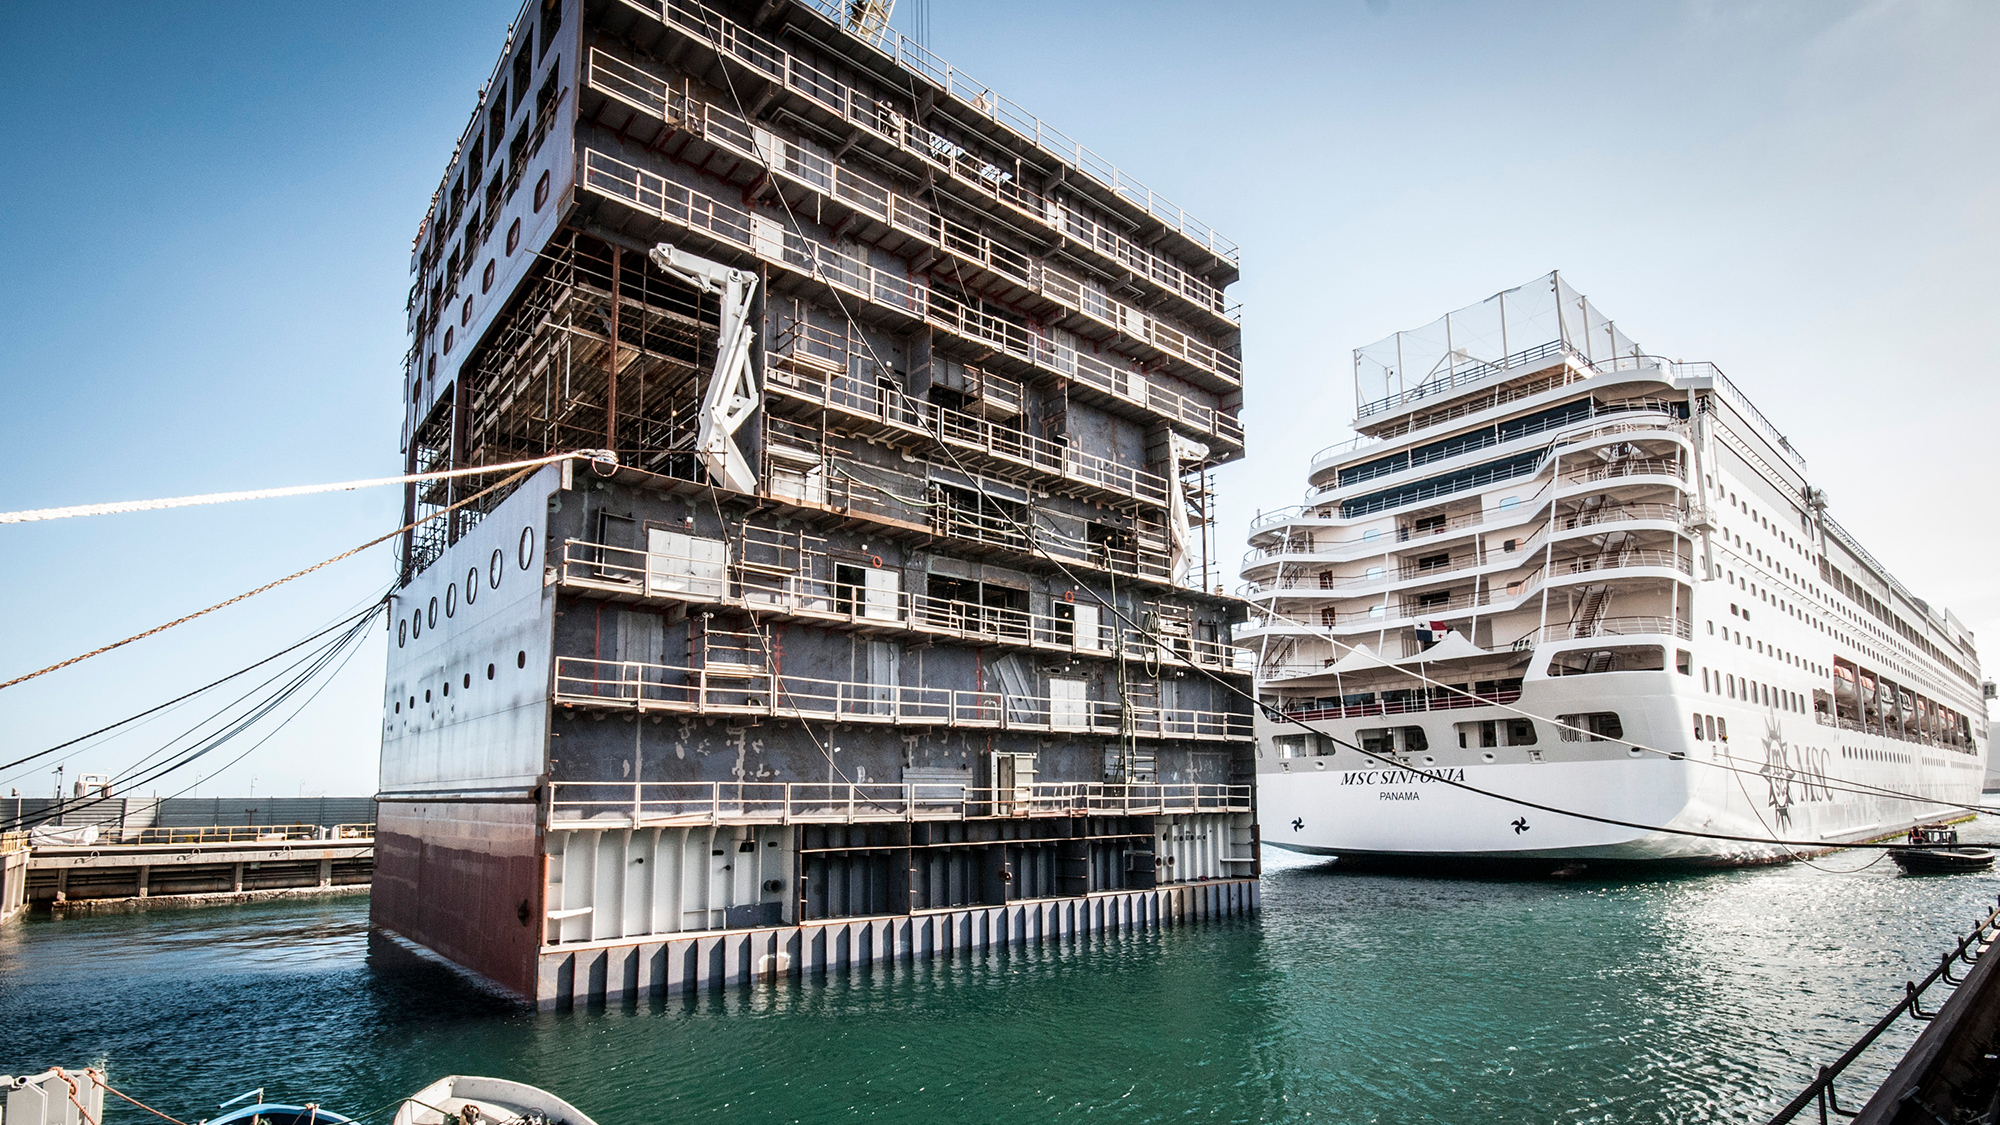 The stretching of MSC Sinfonia is underway: Travel Weekly Tom Cruise Height